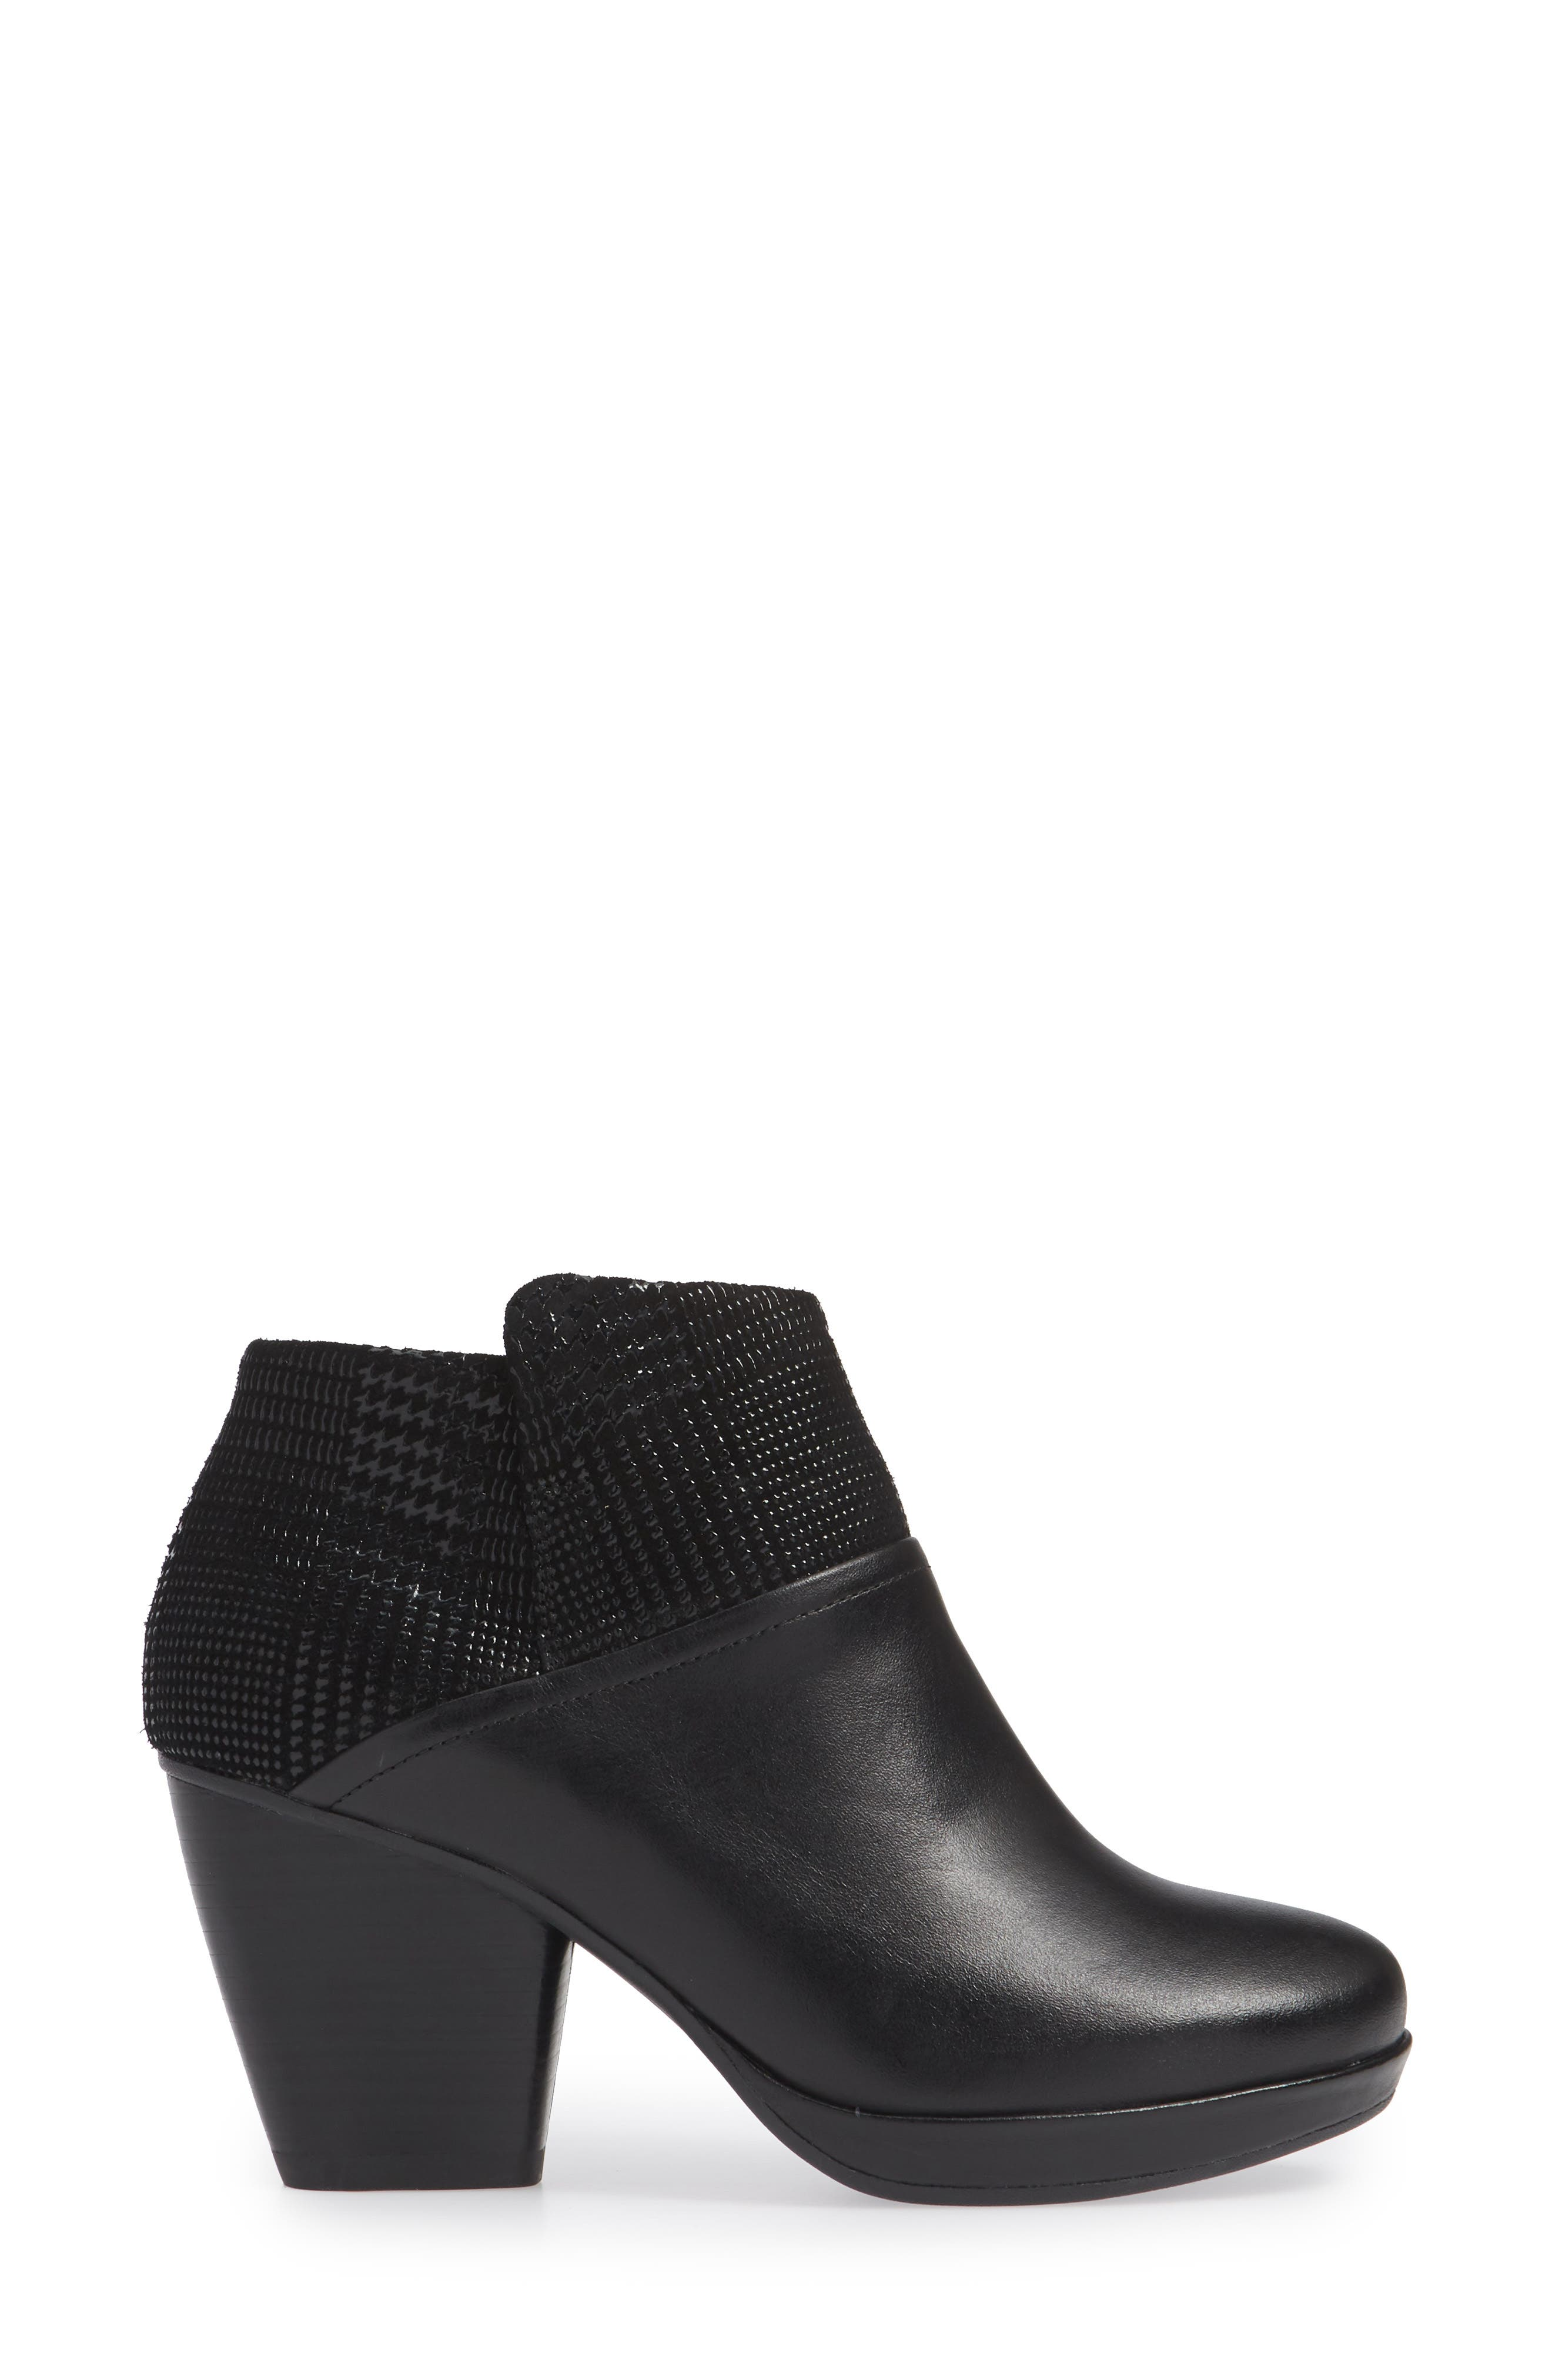 Miley Burnished Leather Bootie,                             Alternate thumbnail 3, color,                             BLACK BURNISHED LEATHER